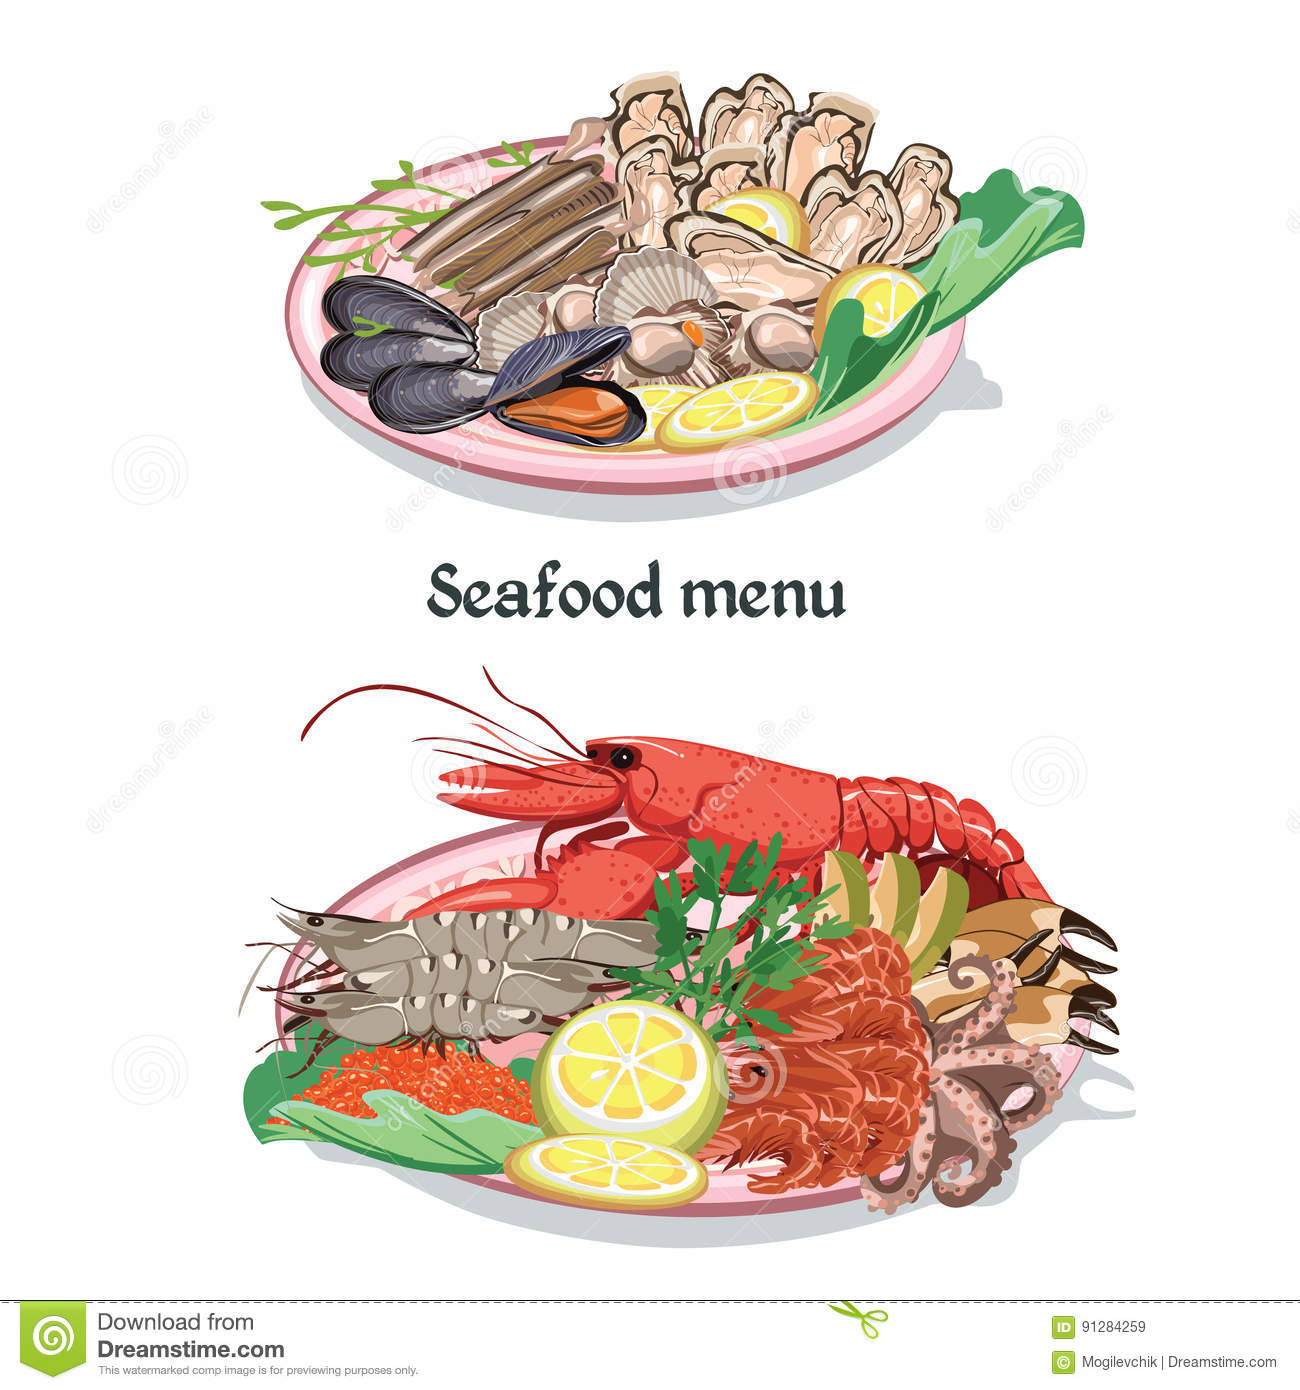 Sketch seafood menu concept. Oyster clipart colorful jpg download